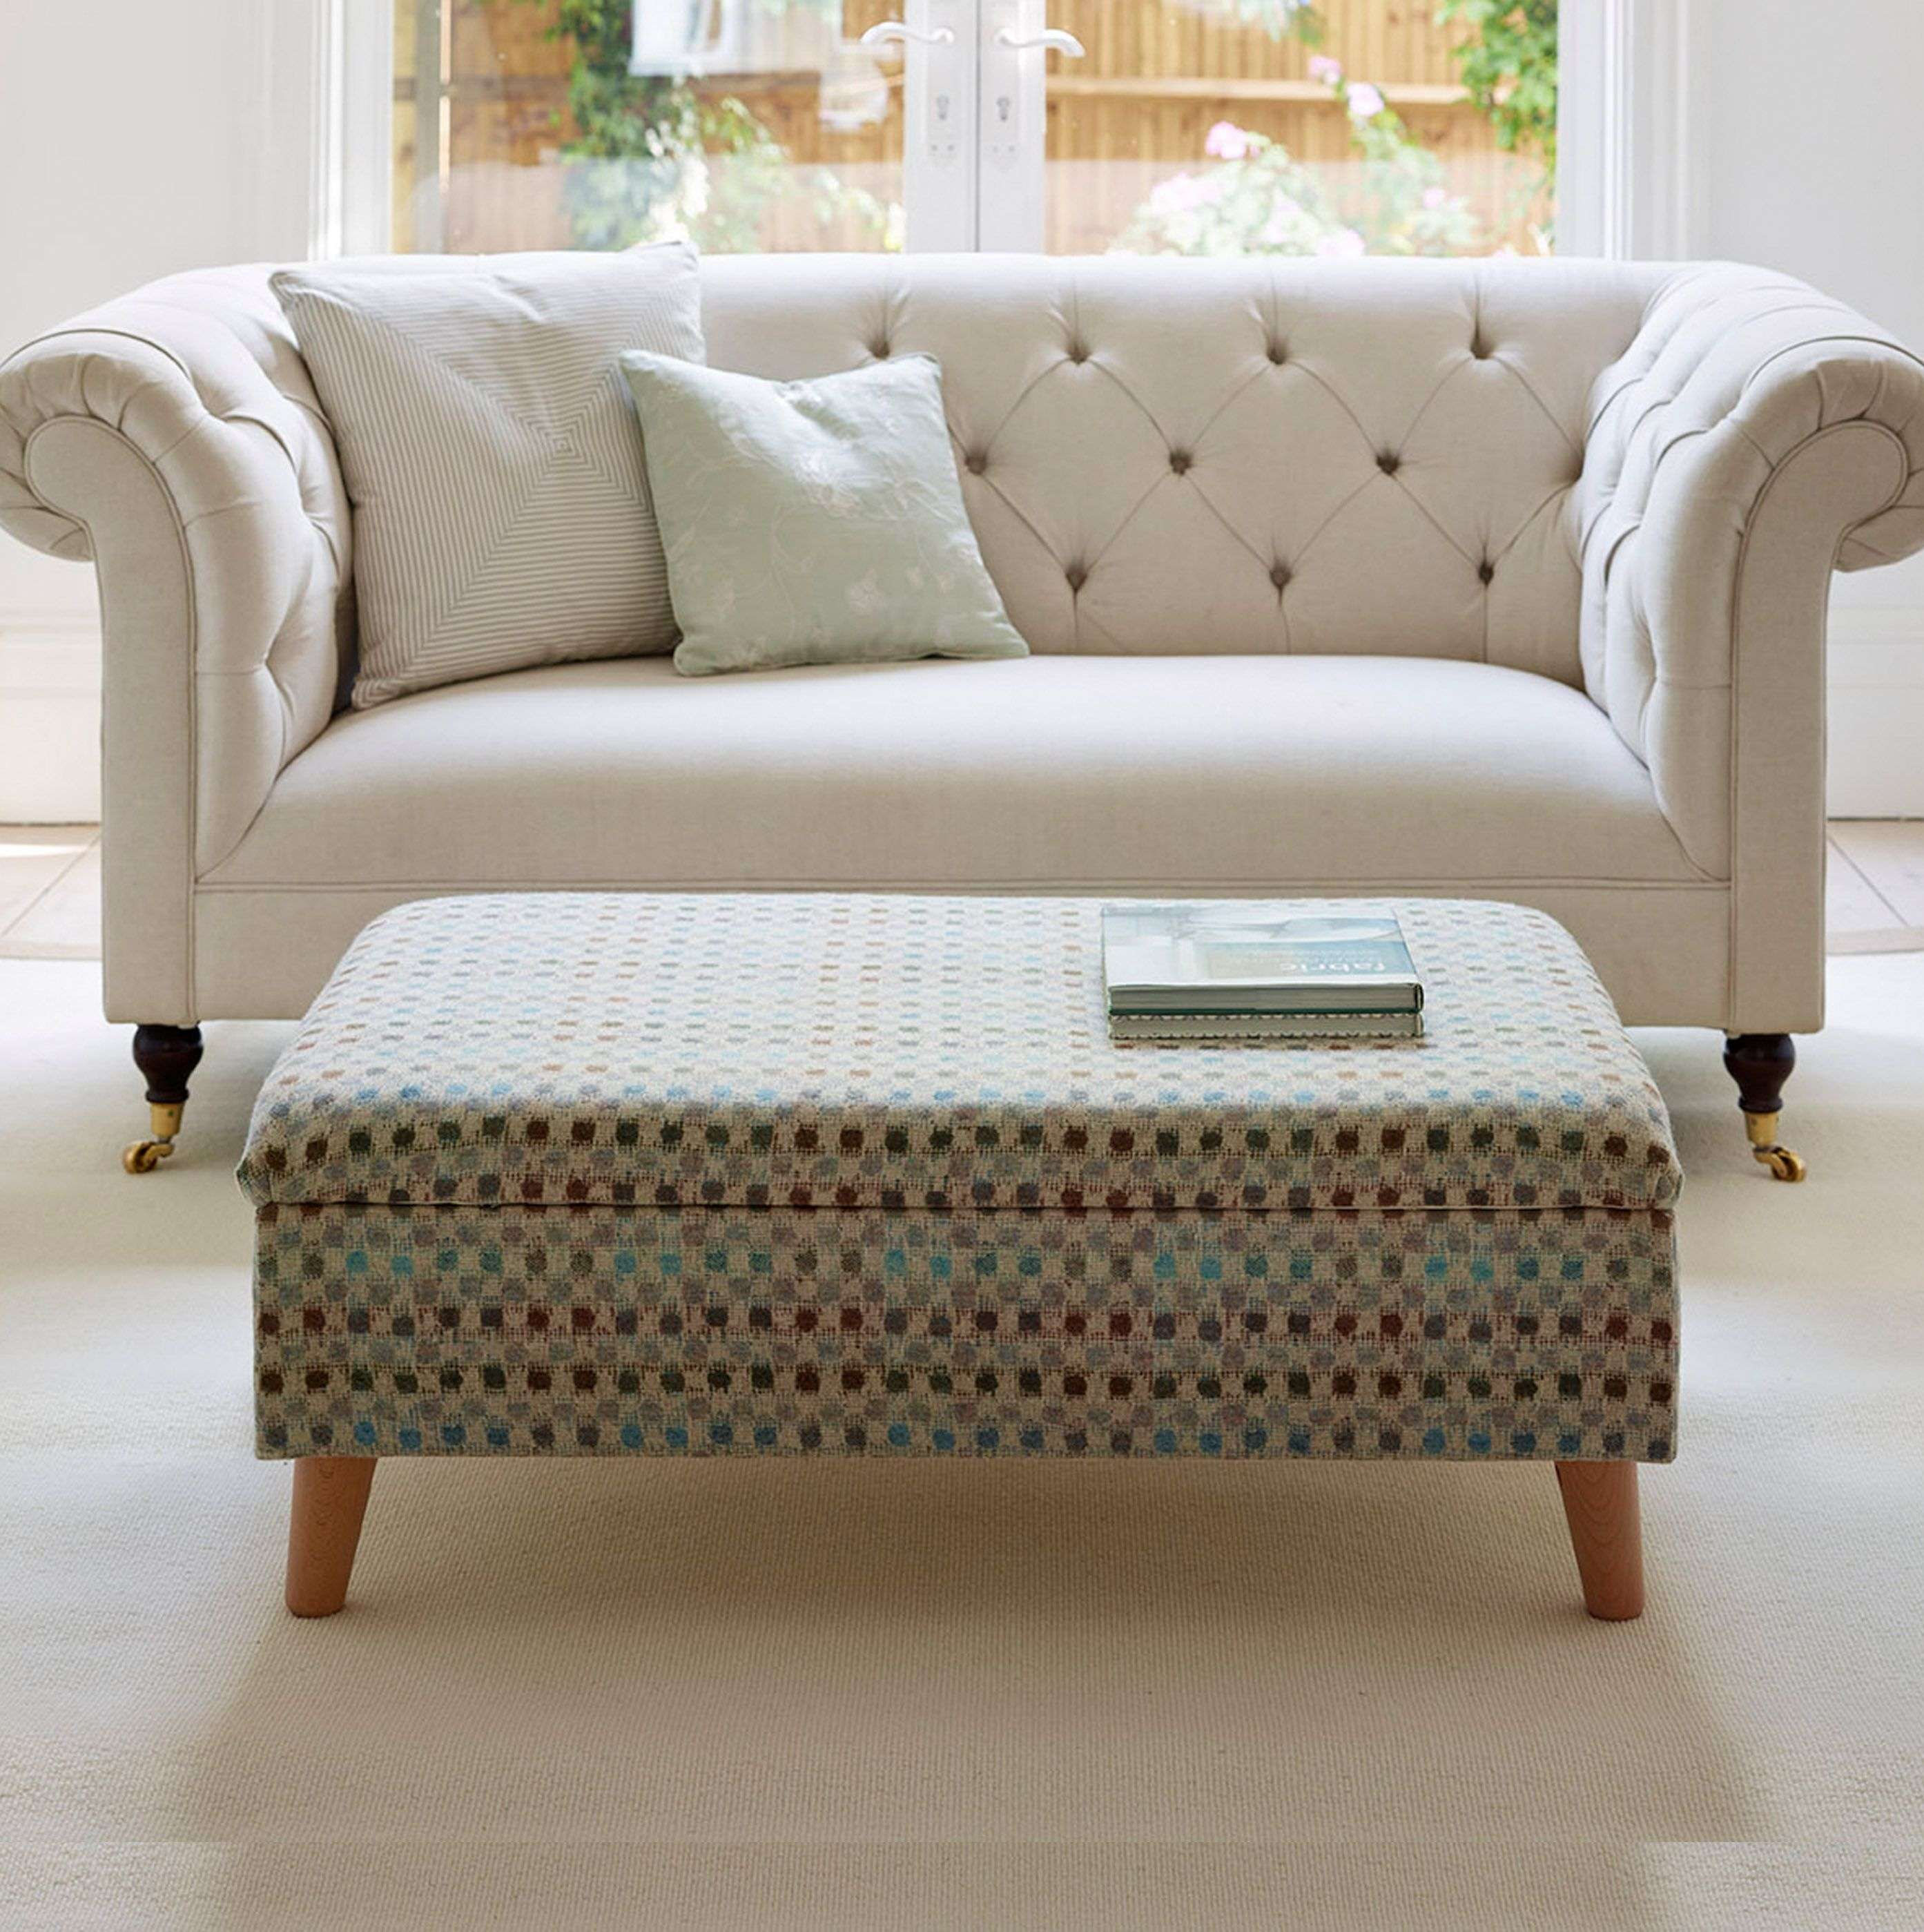 Storage Footstools With Small Retro Legs